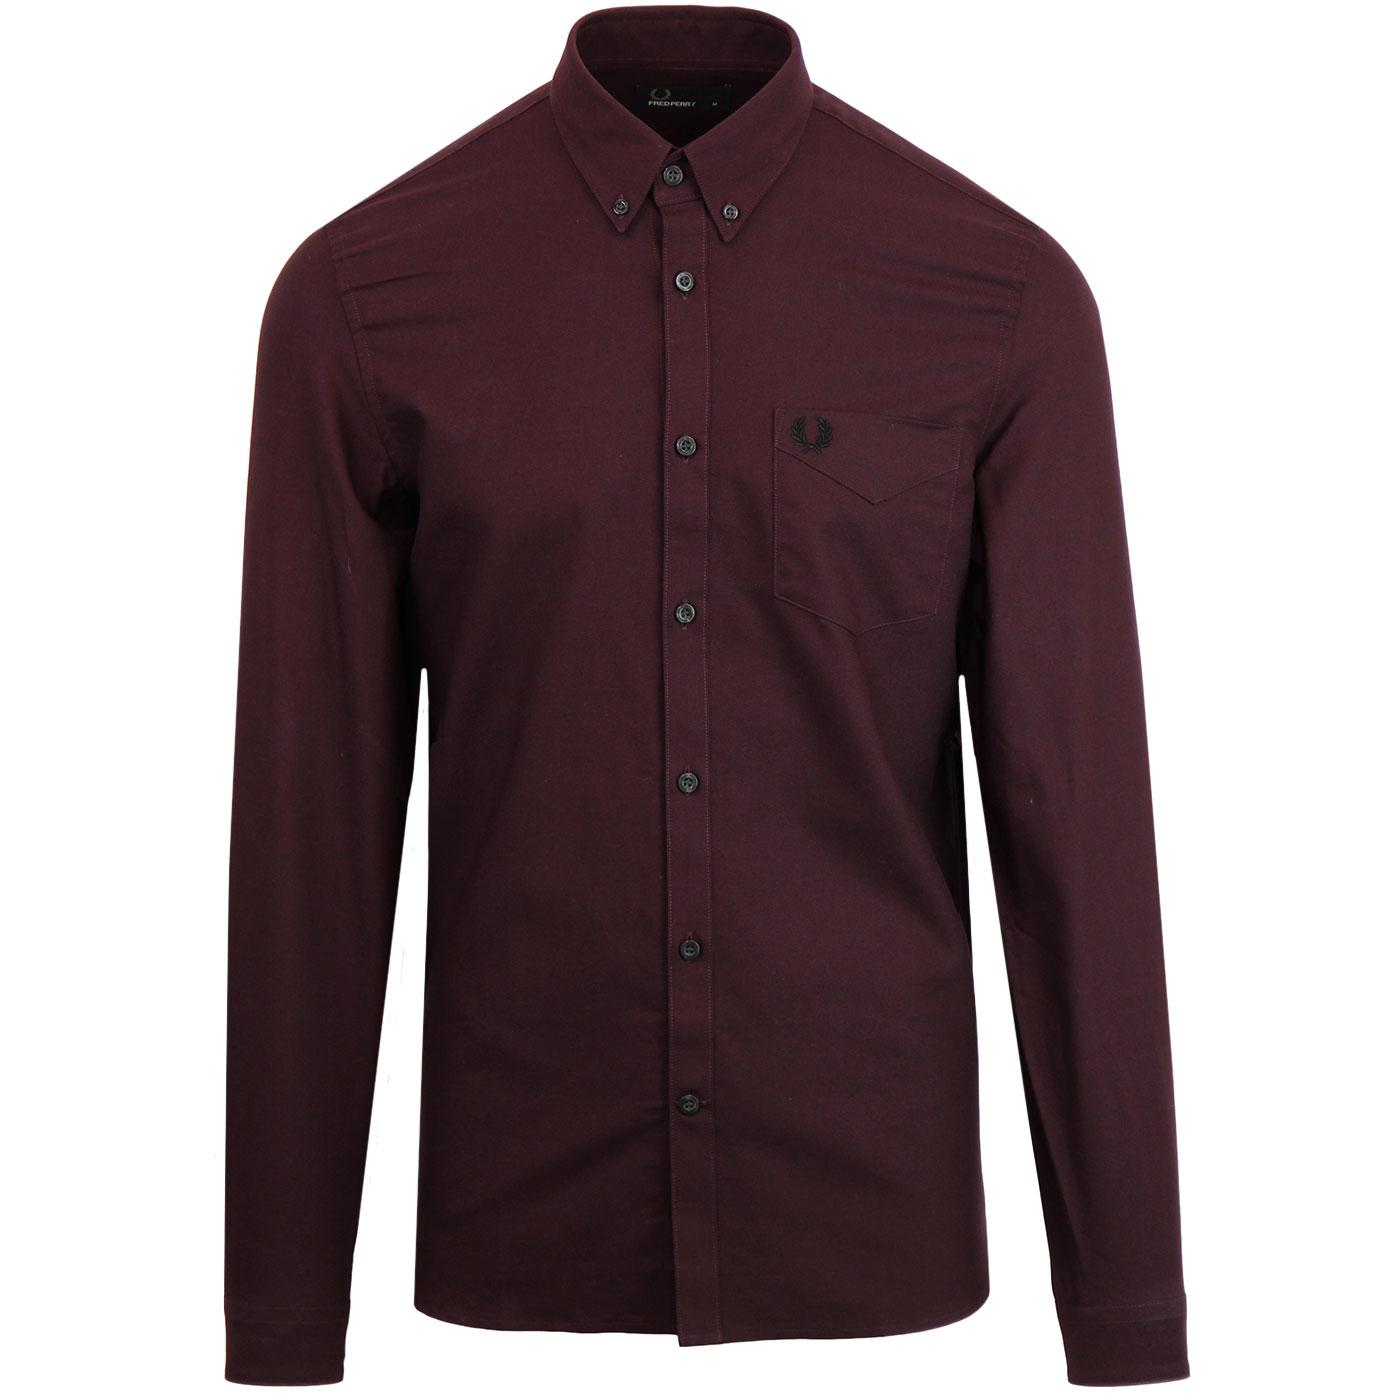 FRED PERRY Men's Classic Mod Oxford Shirt MAHOGANY